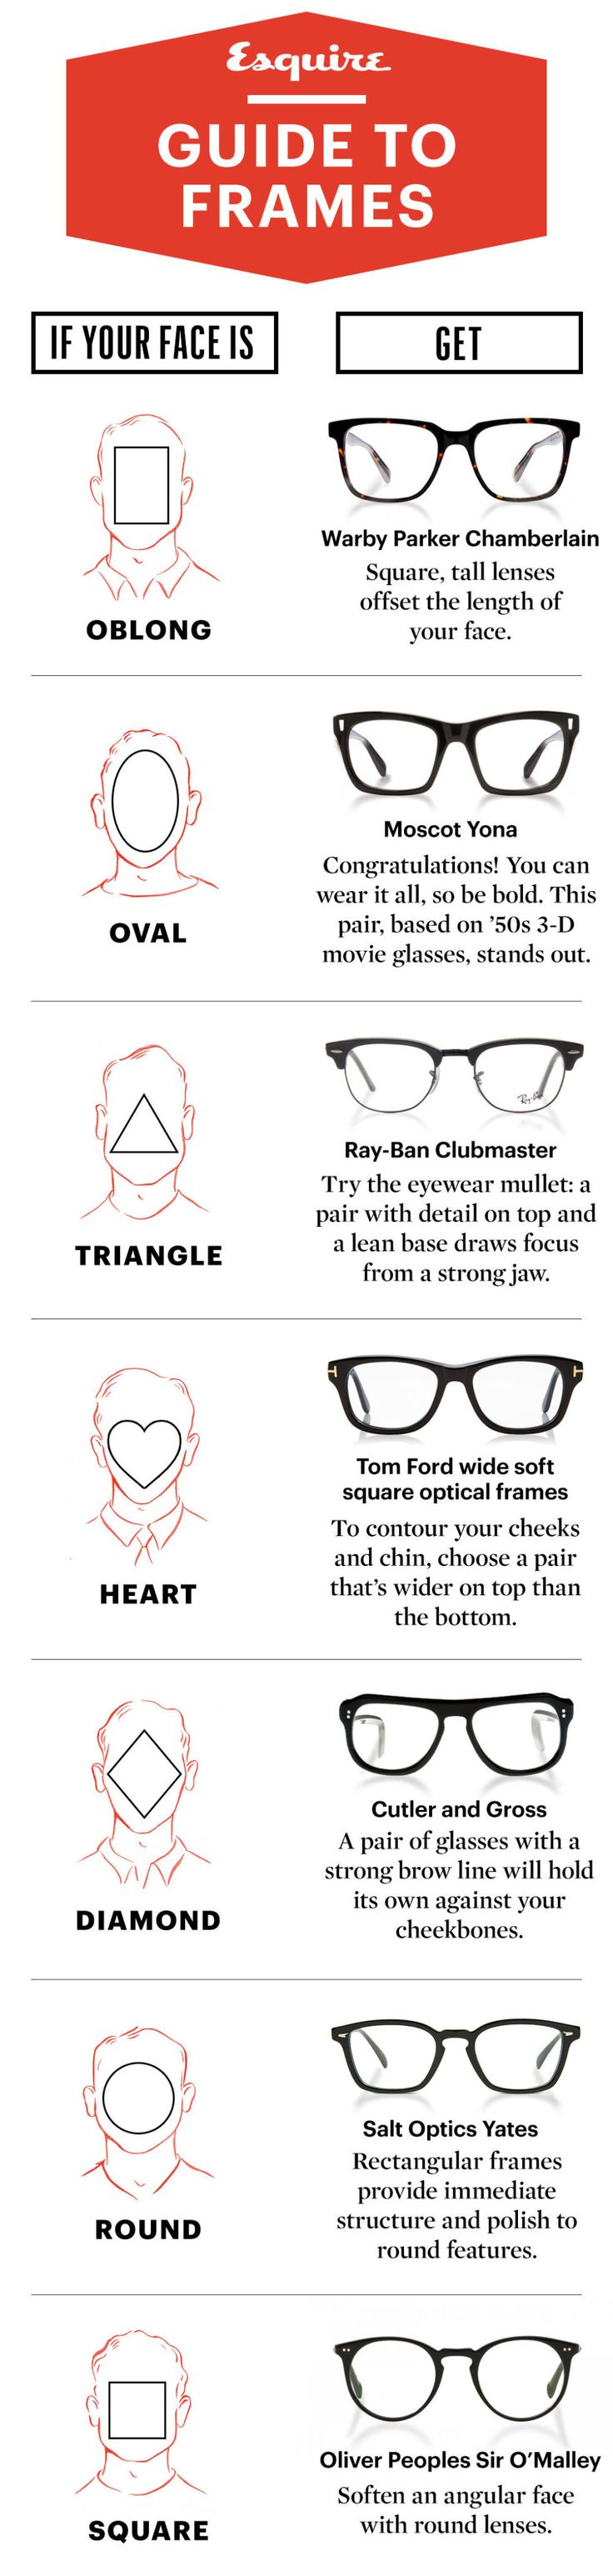 oakley face shape guide